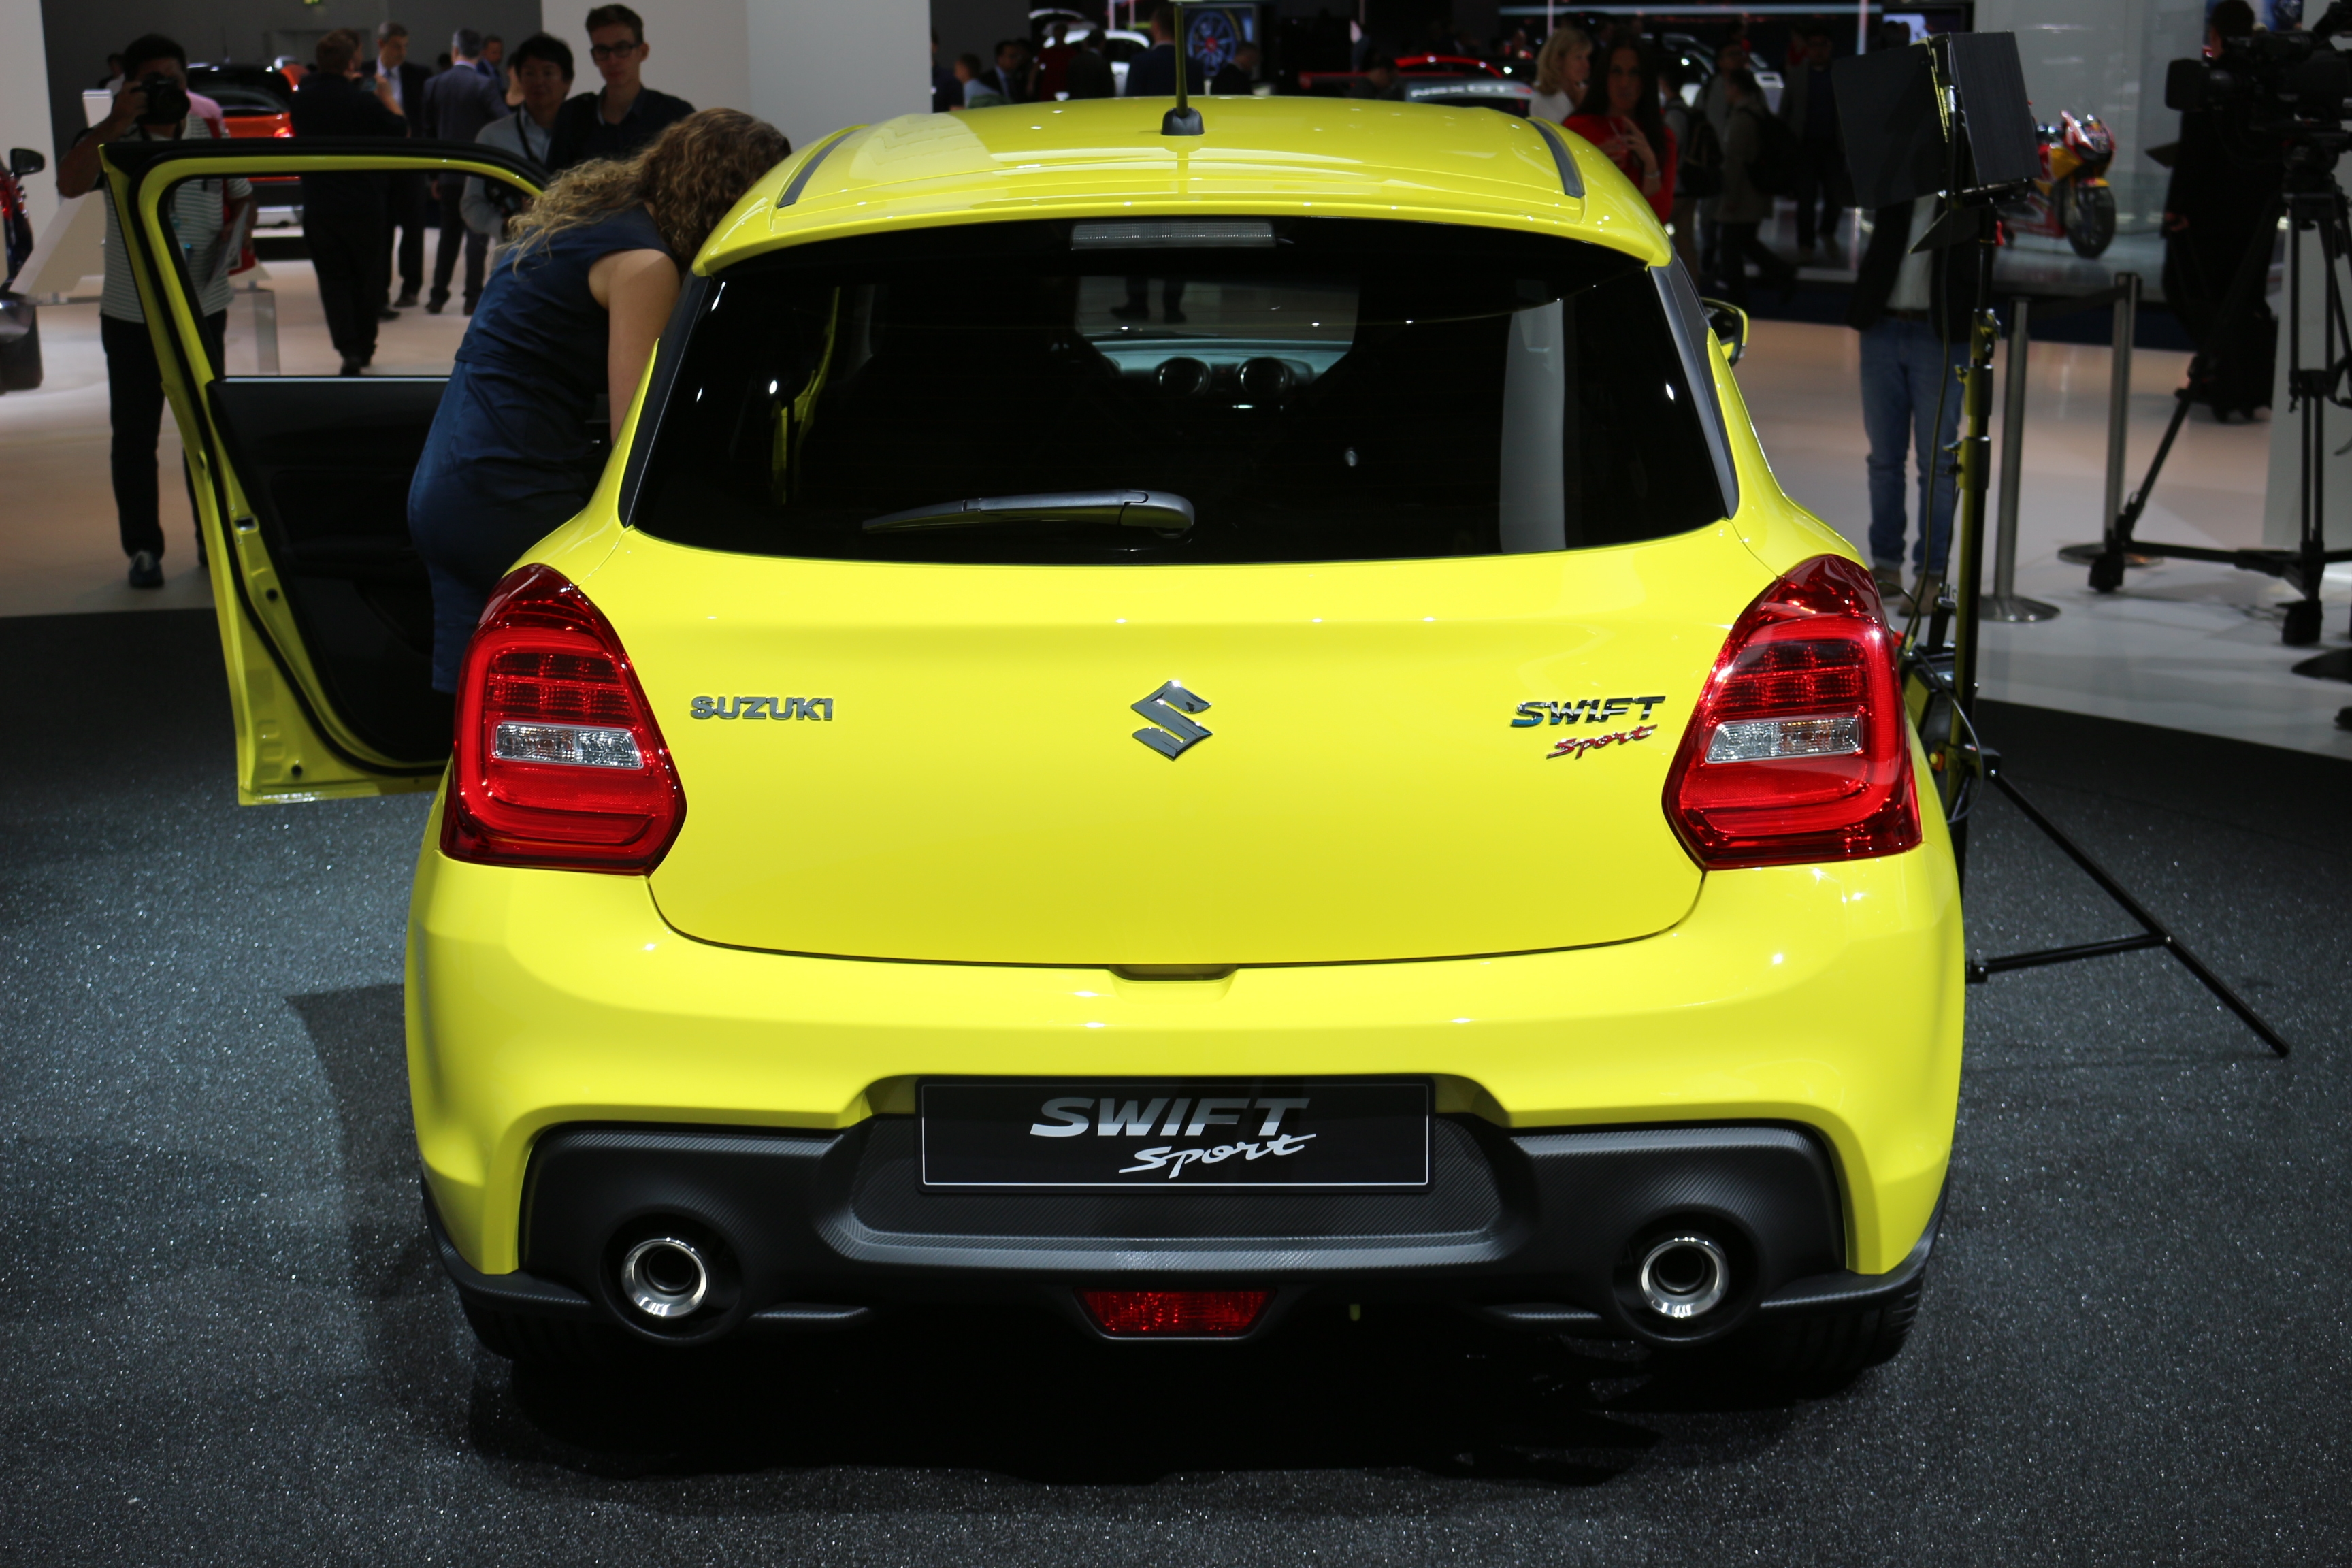 [Image: S0-salon-de-francfort-2017-suzuki-swift-...528800.jpg]